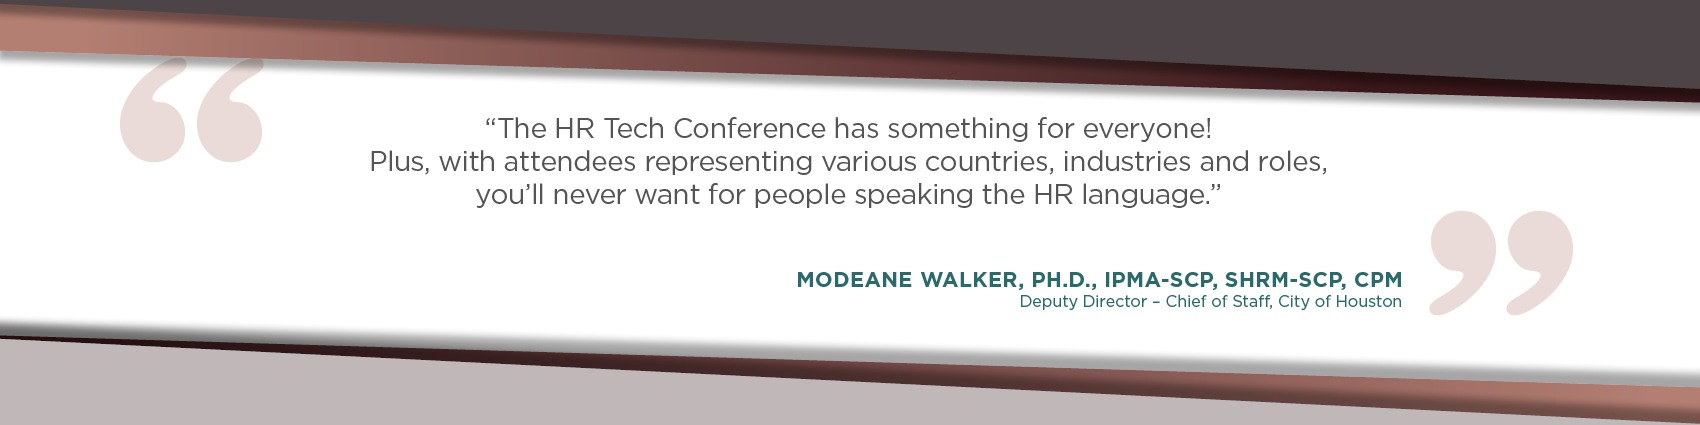 The HR Tech Conference has something for everyone! Plus, with attendees representing various countries, industries and roles, you'll never want for people speaking the HR language. - Modeane Walker